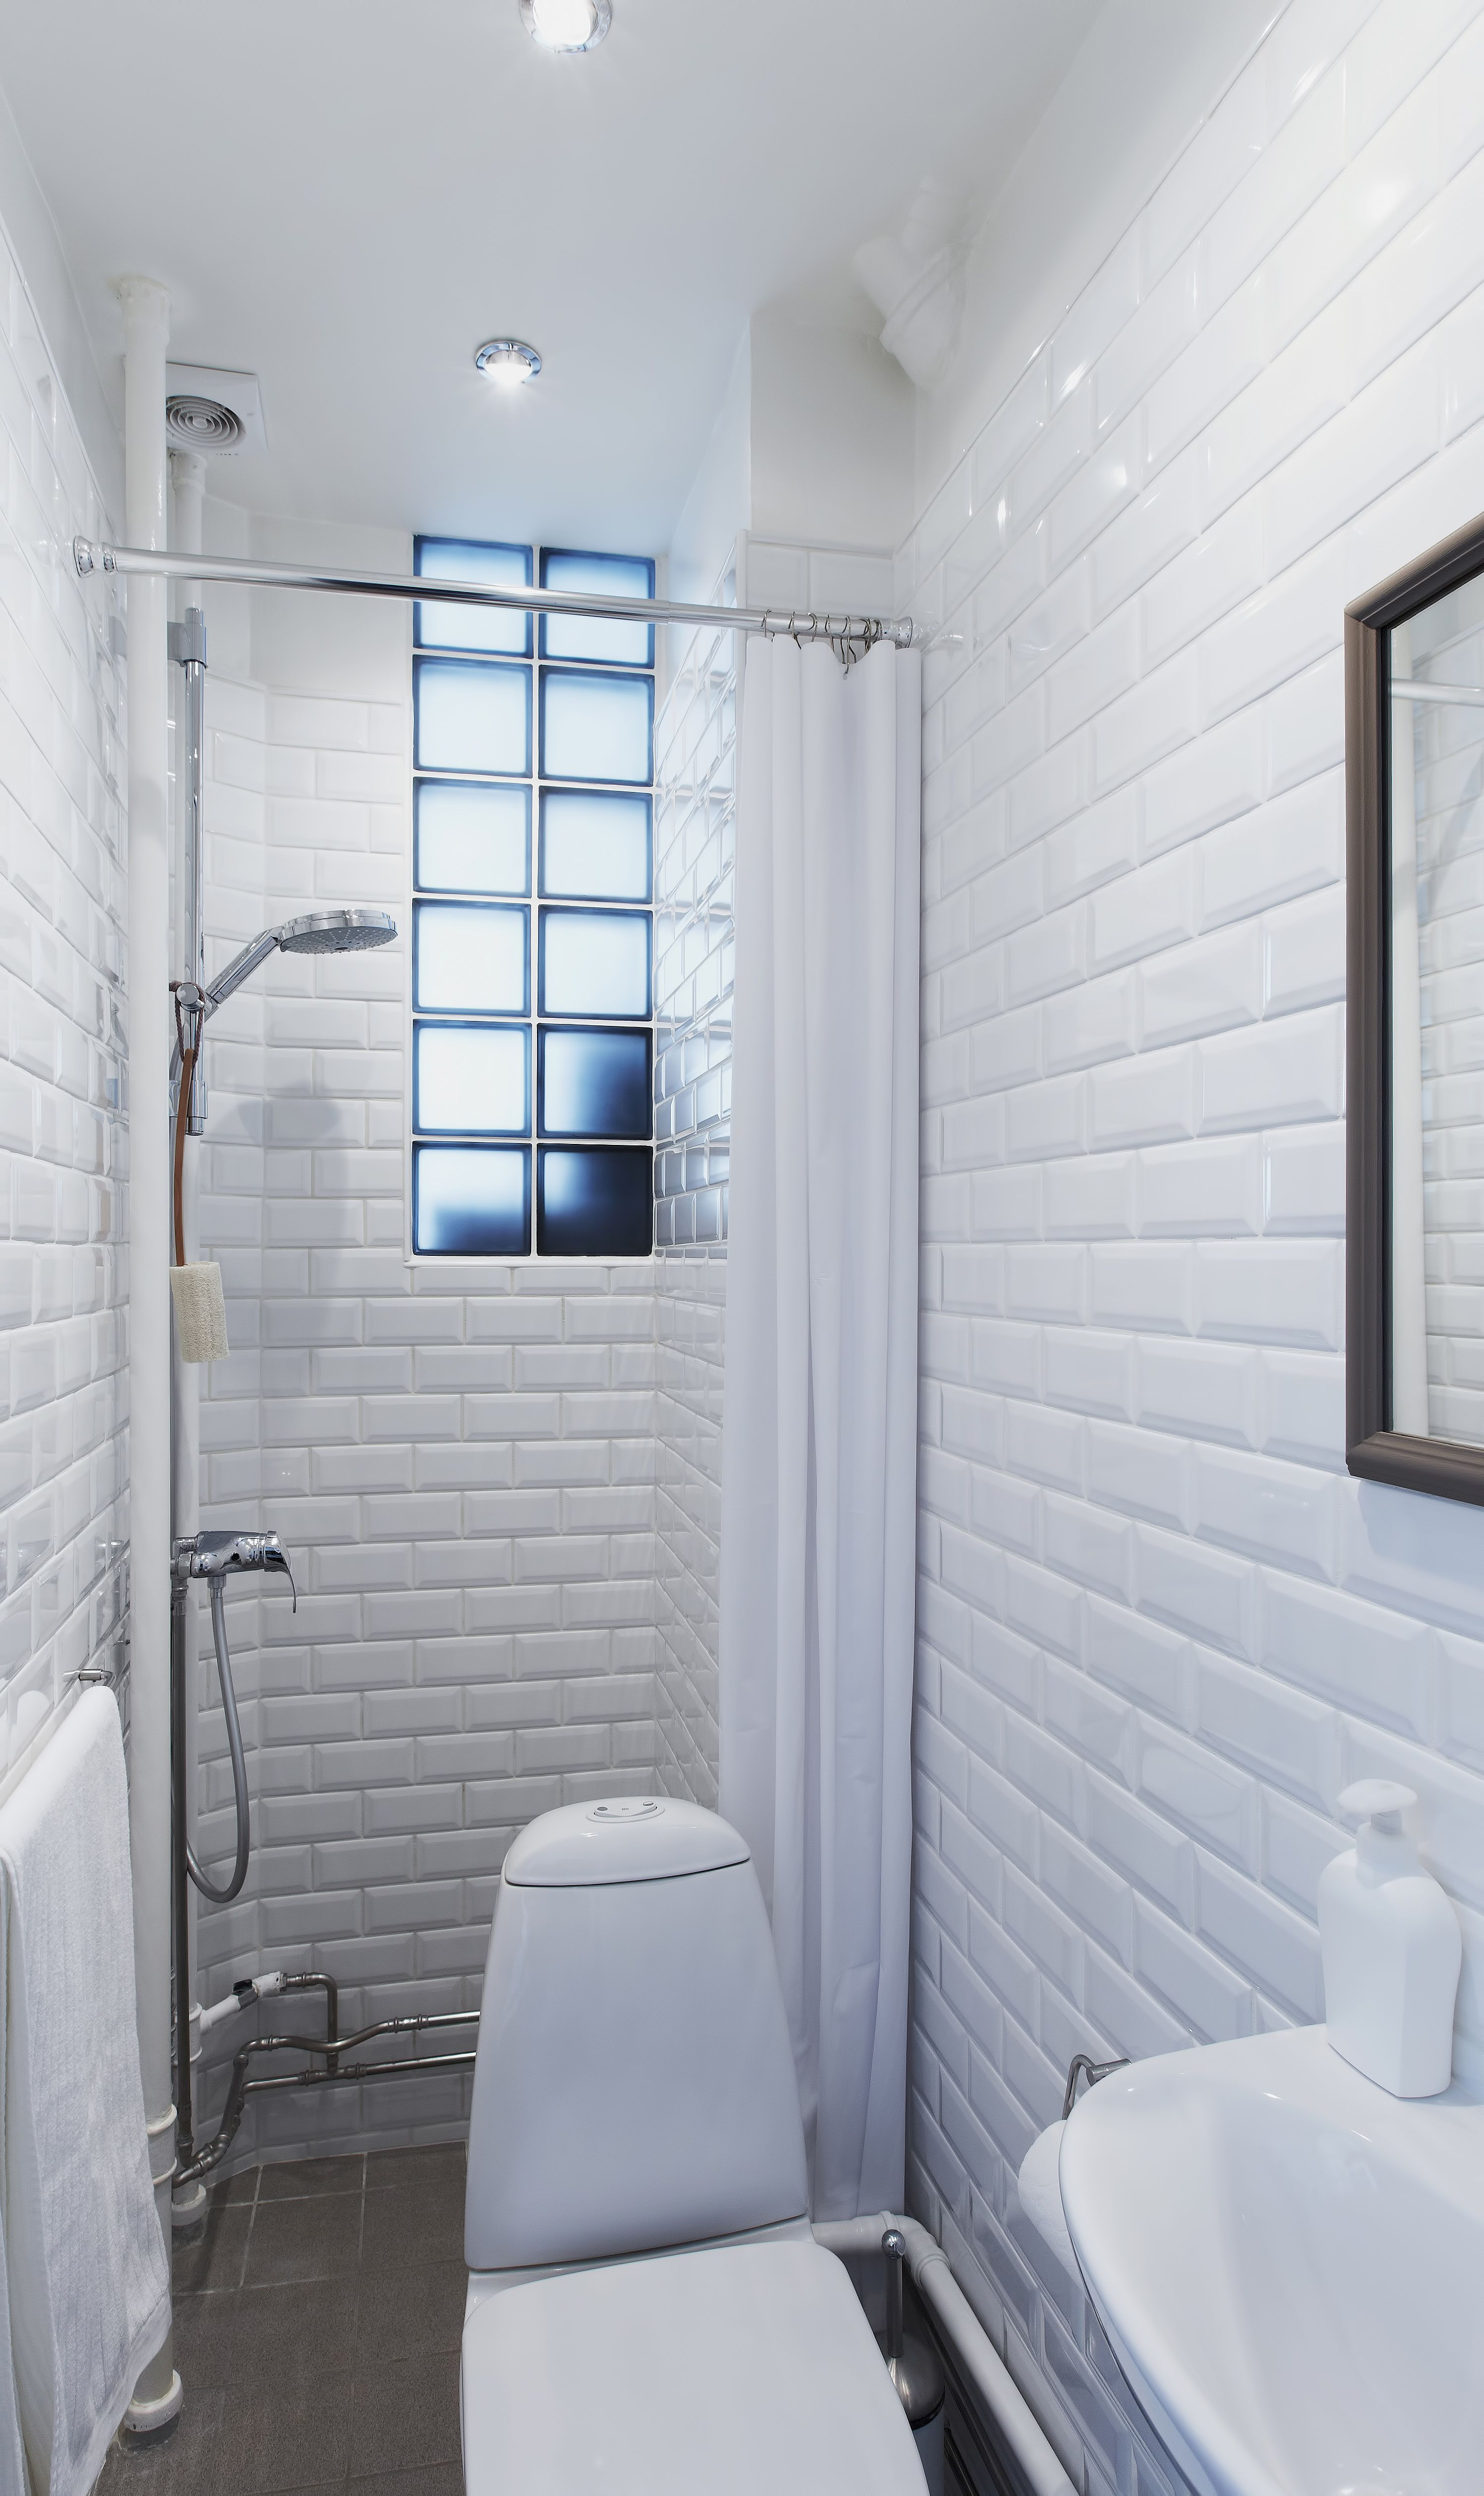 Small Bathroom with Paris Metro-style tiles on walls | wall ...